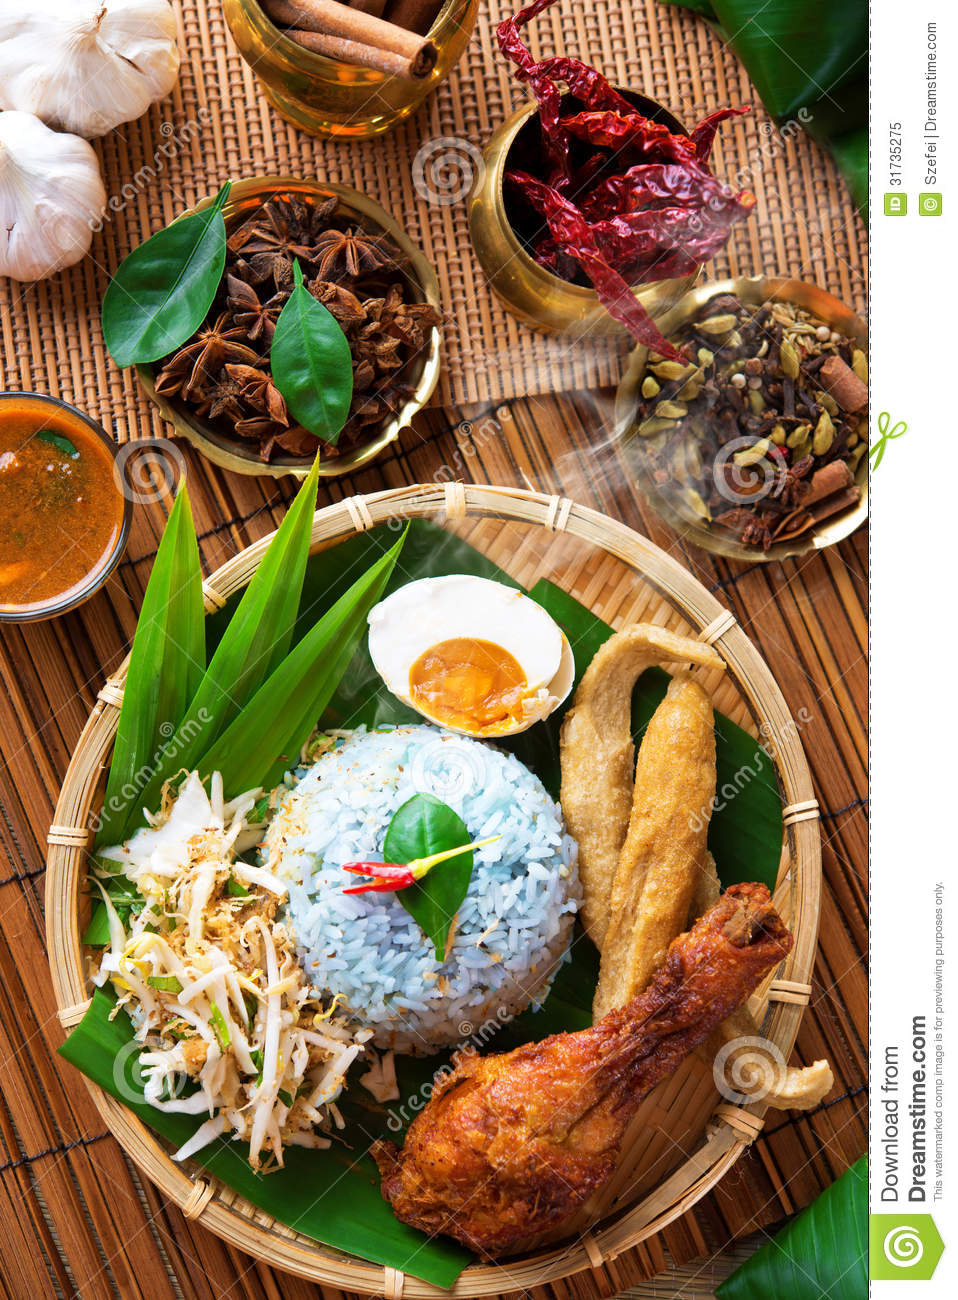 Malaysian traditional food college paper service zhpaperpfdbtsafo malaysian traditional food the complete list of easy malaysian 34 insanely easy malaysian chinese recipes and forumfinder Gallery